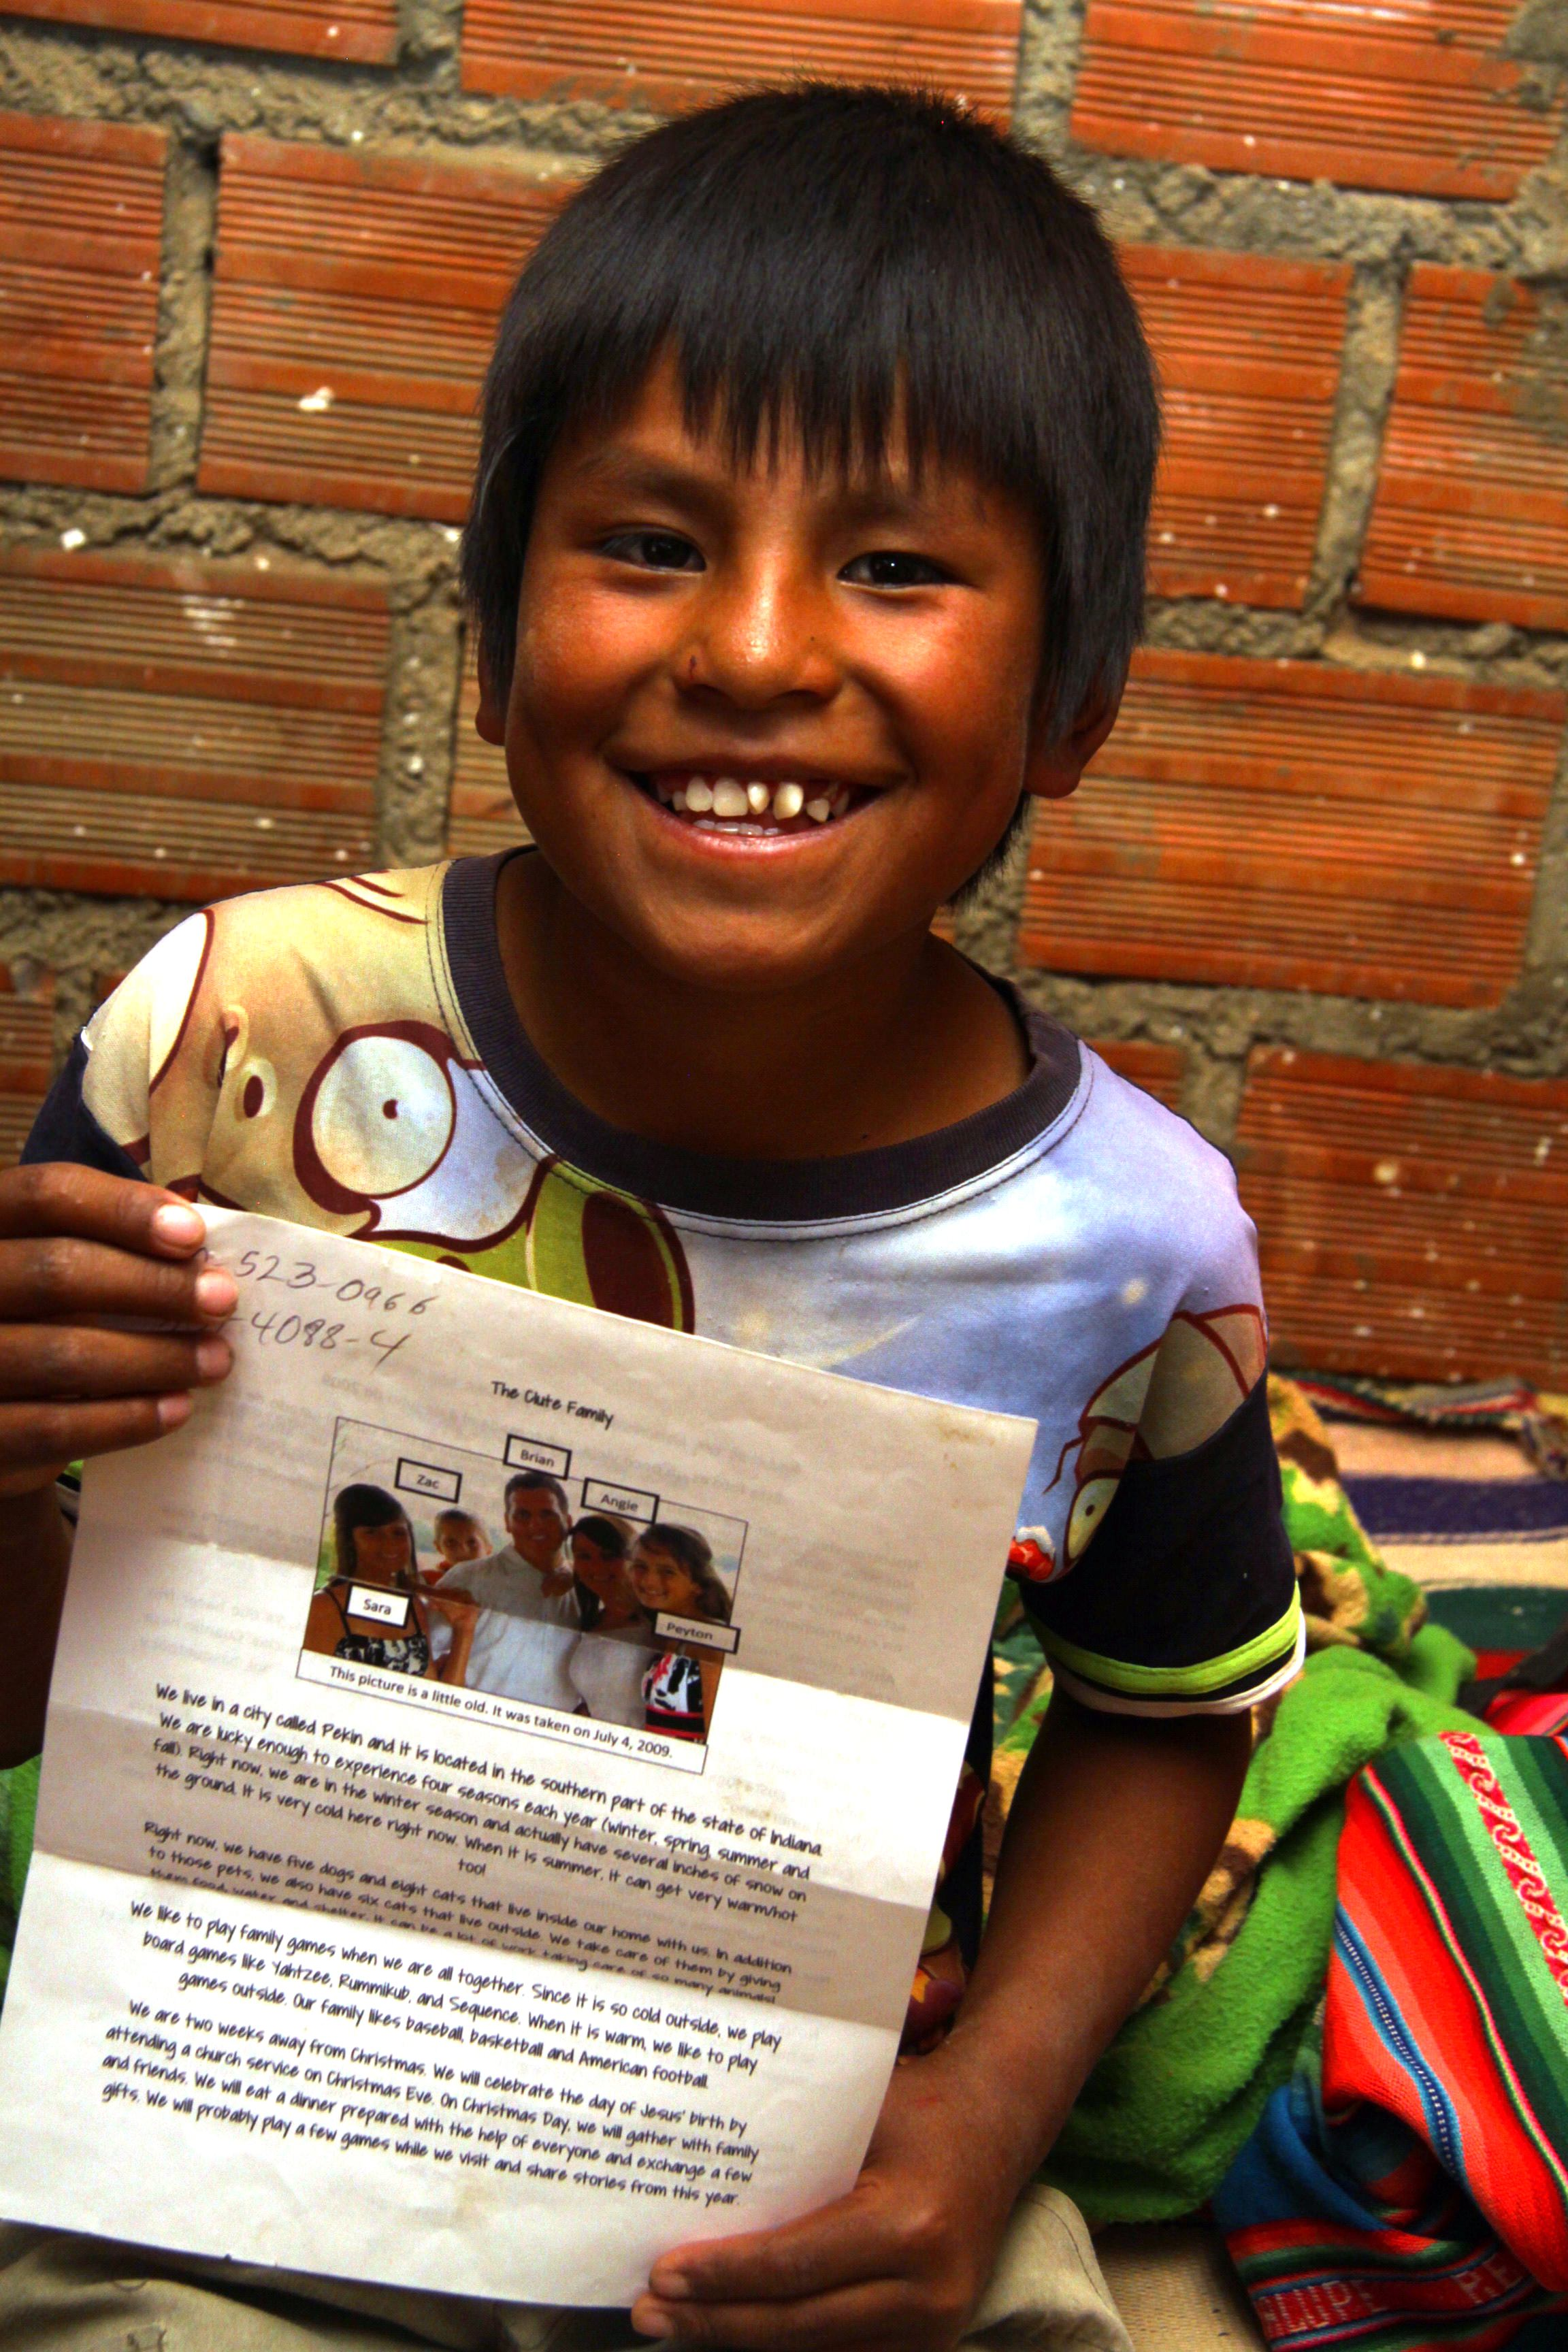 Bolivian sponsored child with letters